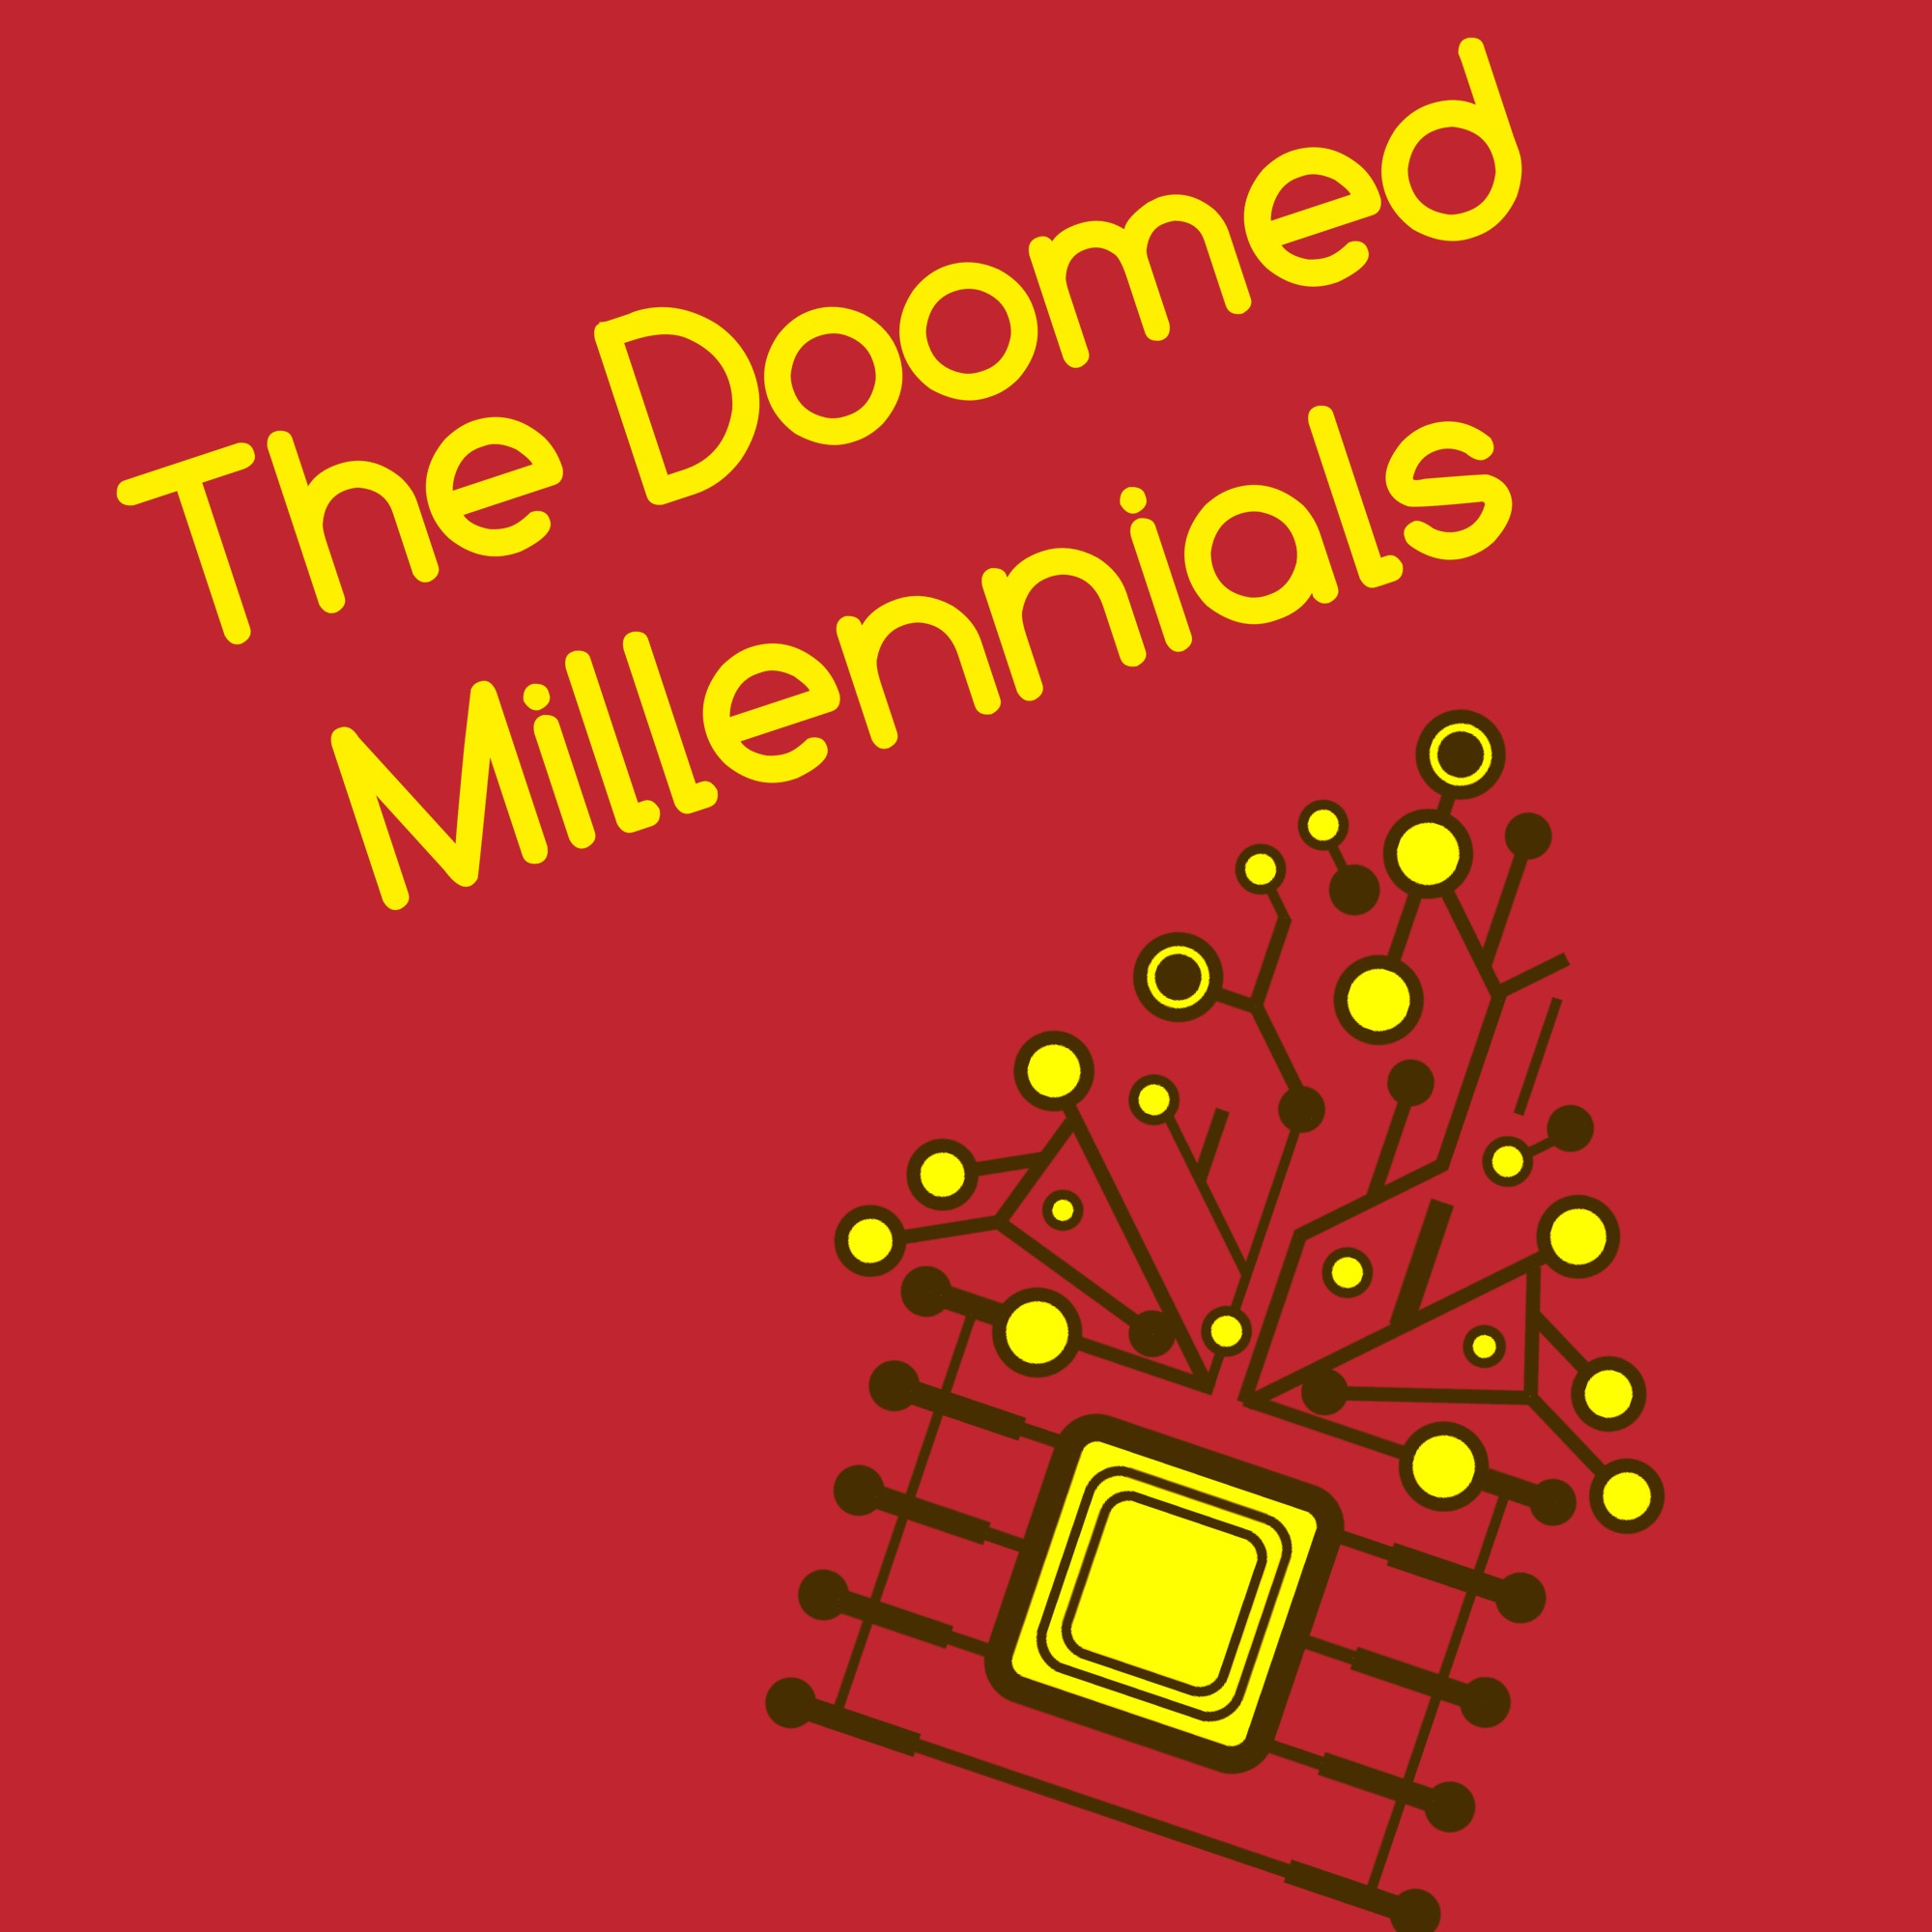 The Doomed Millennials